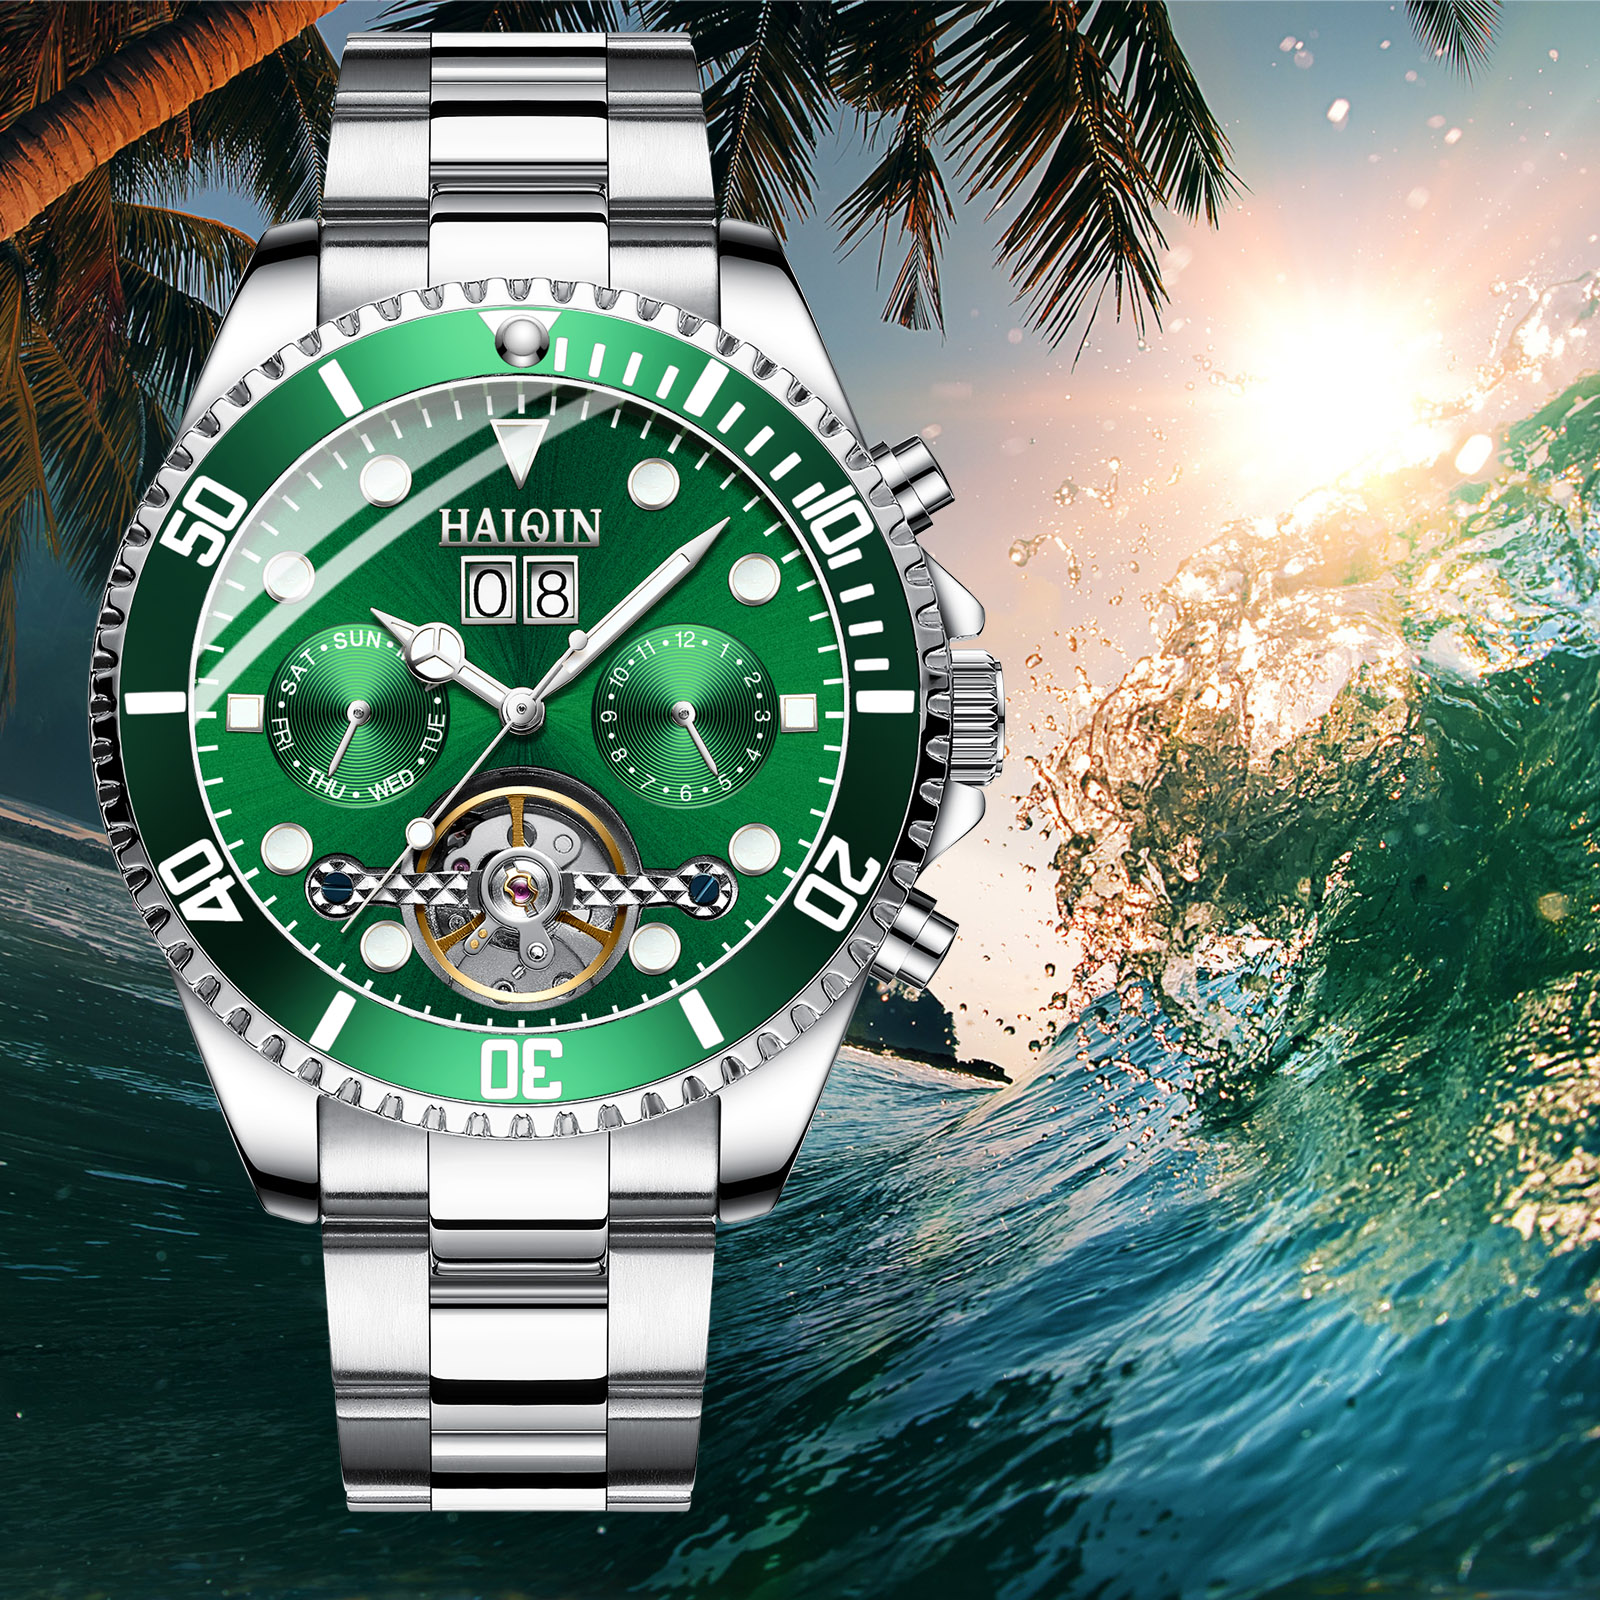 HAIQIN Brand Luxury Mens Watch Machinery Business Steel Watch Sports Waterproof Watch Tourbillon Green Water Ghost SeriesHAIQIN Brand Luxury Mens Watch Machinery Business Steel Watch Sports Waterproof Watch Tourbillon Green Water Ghost Series